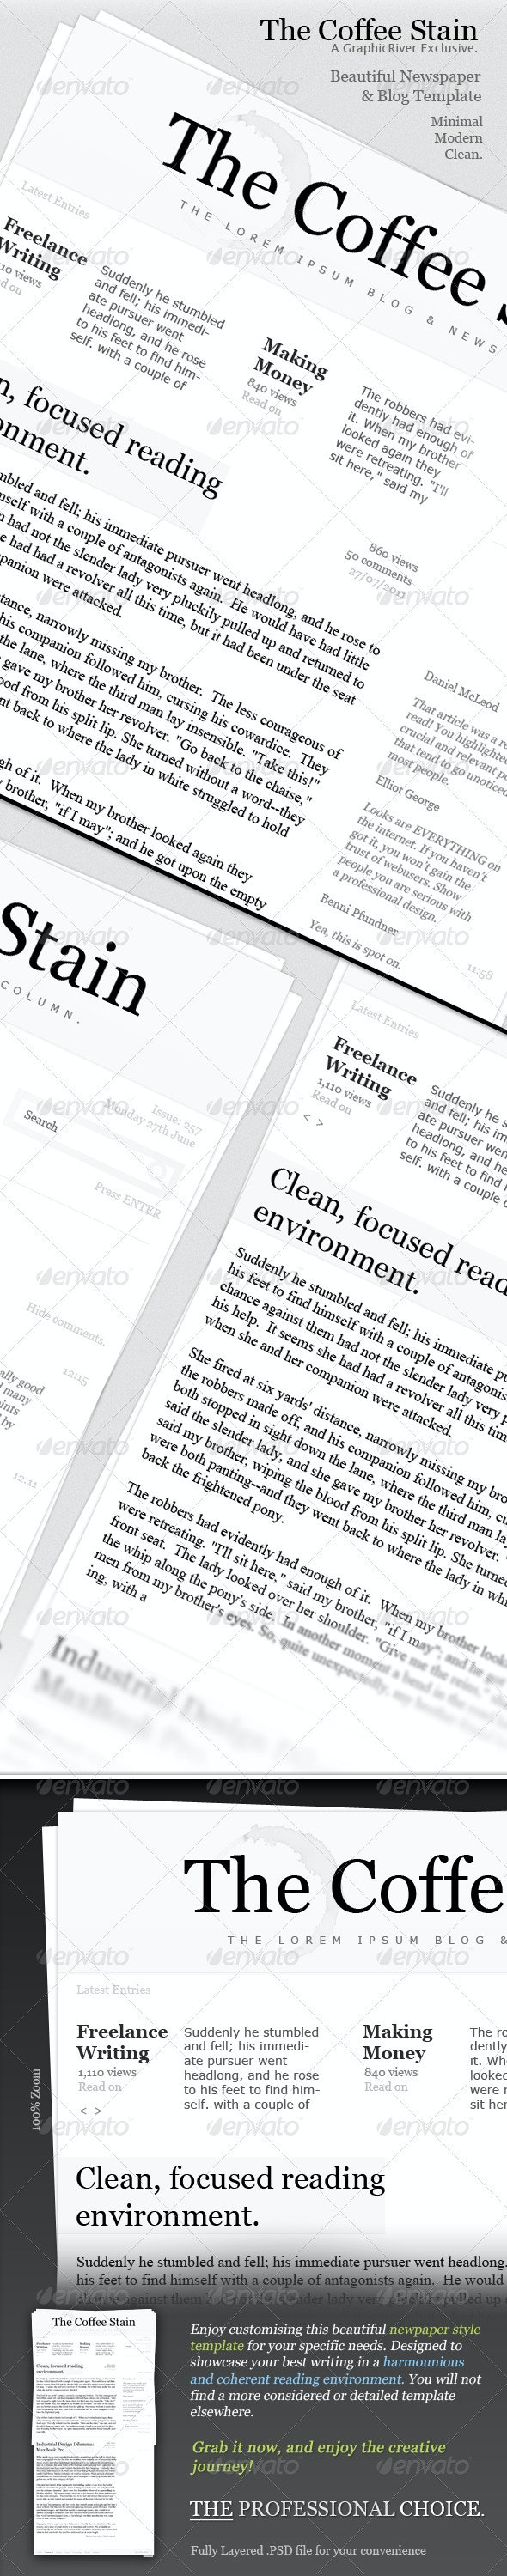 Newspaper Column Template - The Coffee Stain  - E-newsletters Web Elements